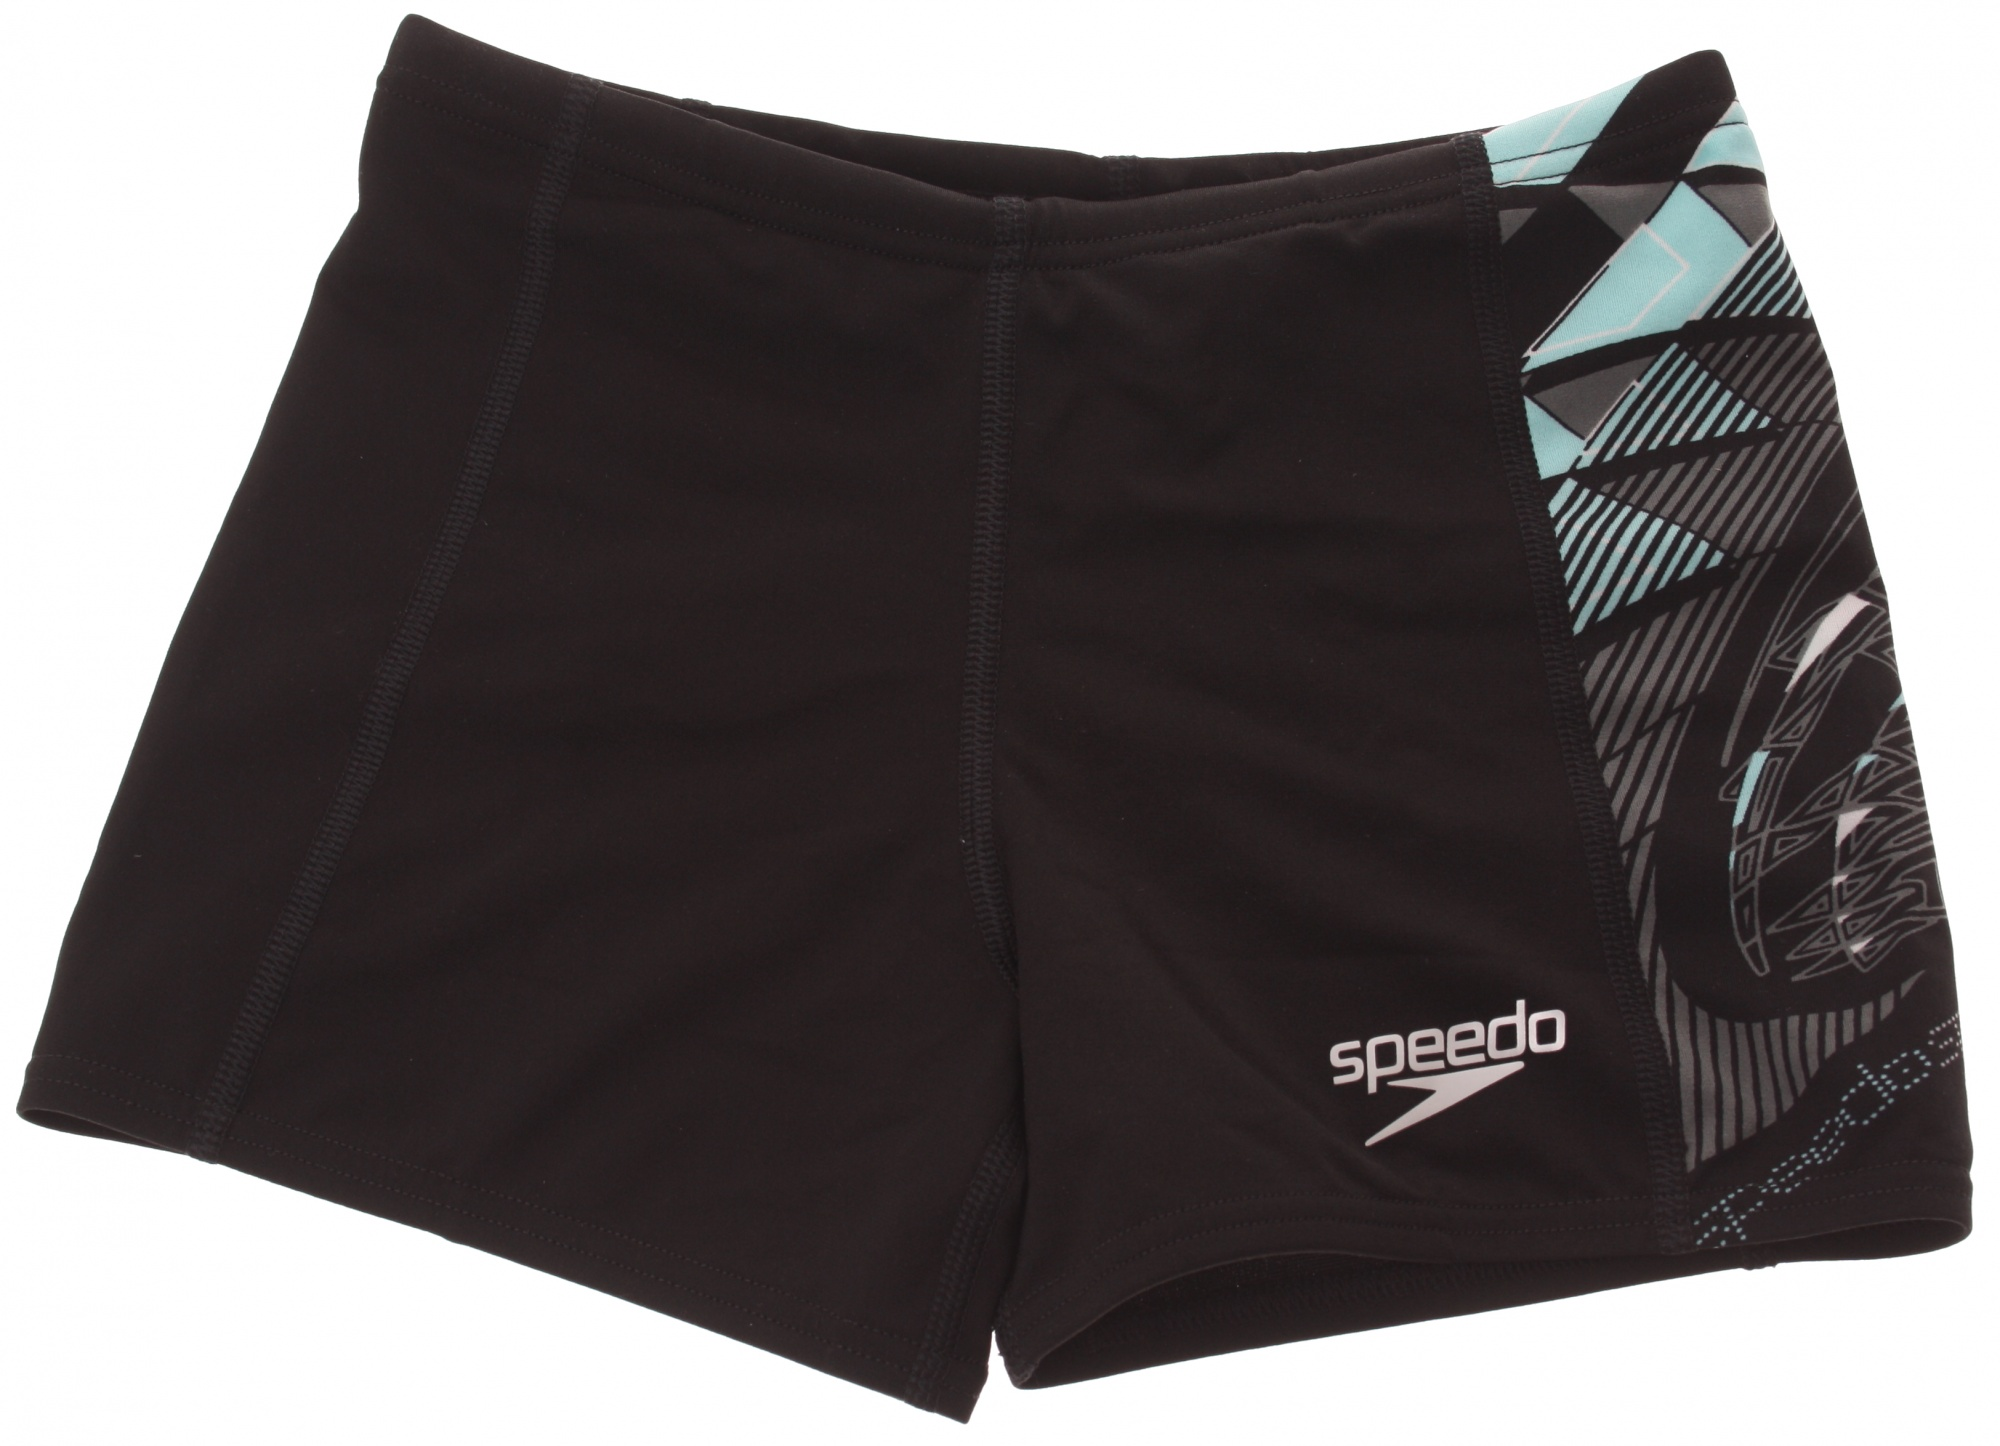 Zwembroek Speedo.Speedo Swimsuit Aqua Evolve Men Black Internet Sport Casuals